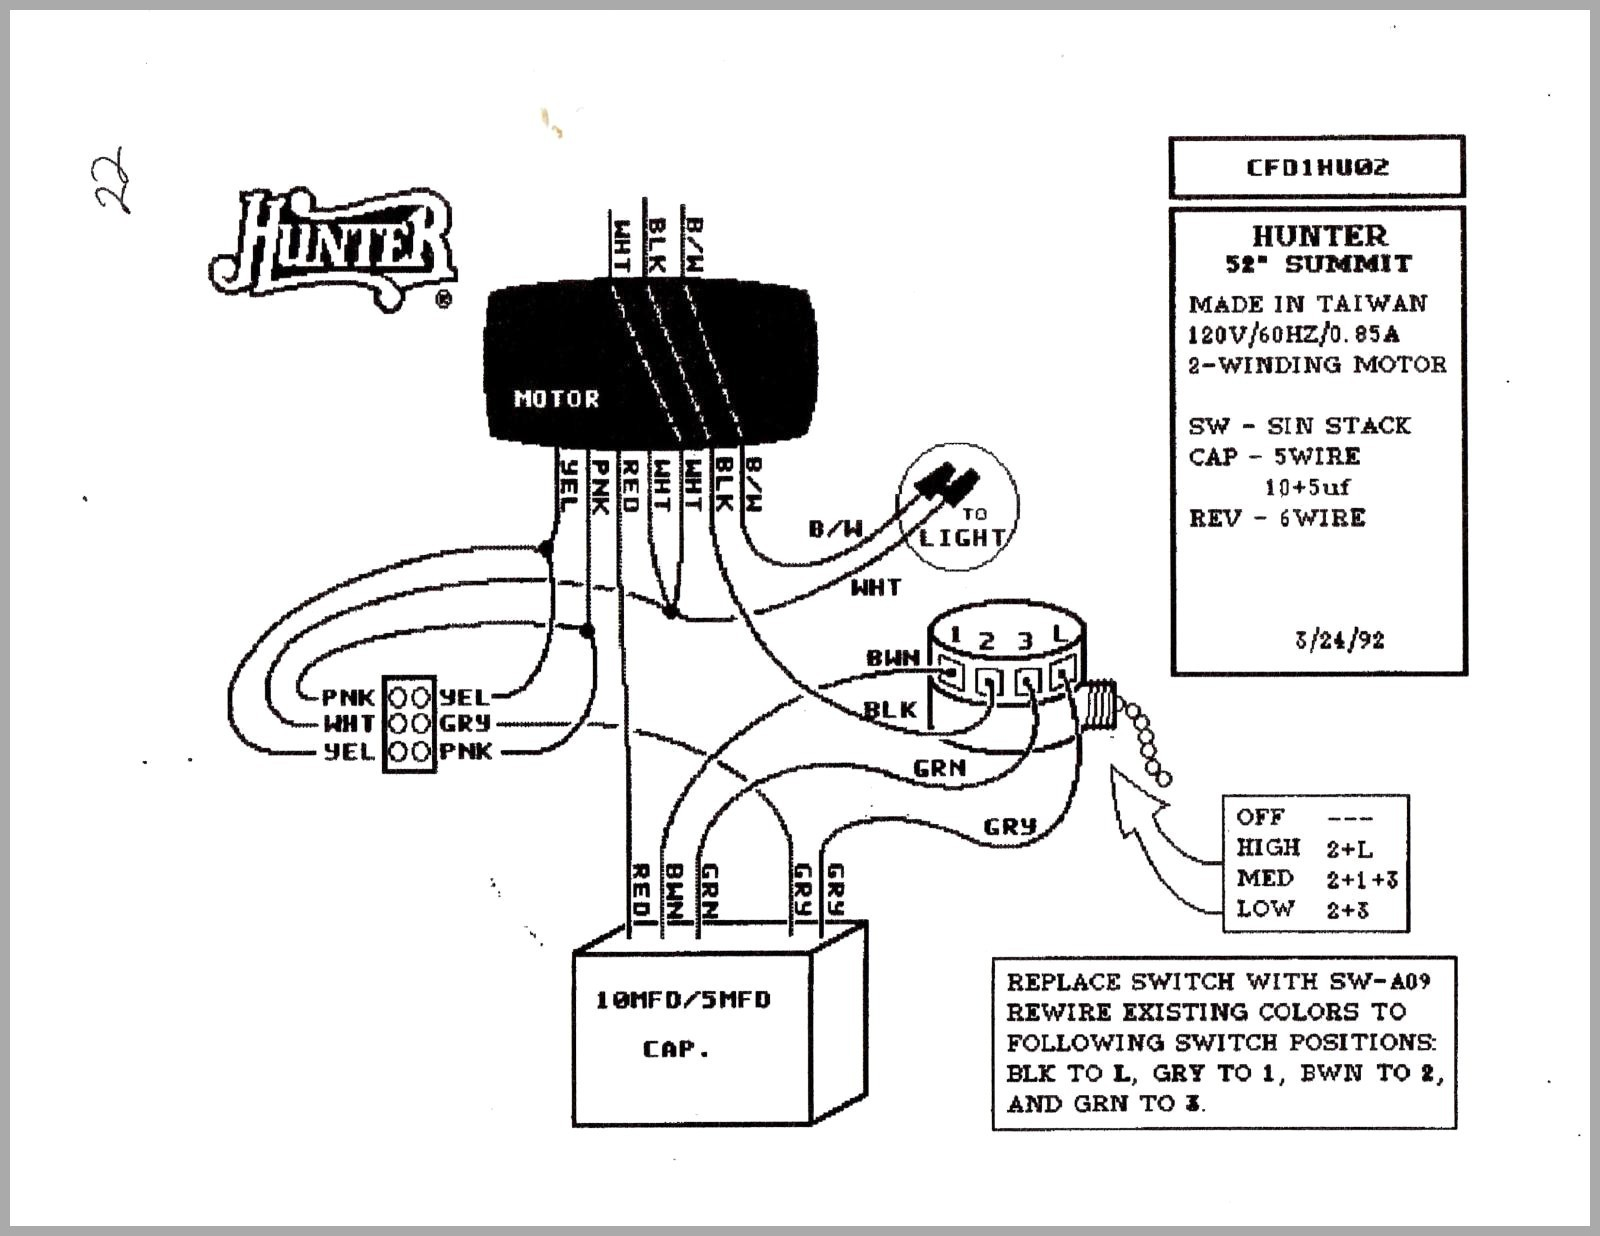 magnificent westinghouse 77020 wiring diagram frieze simple wiring rh littleforestgirl net